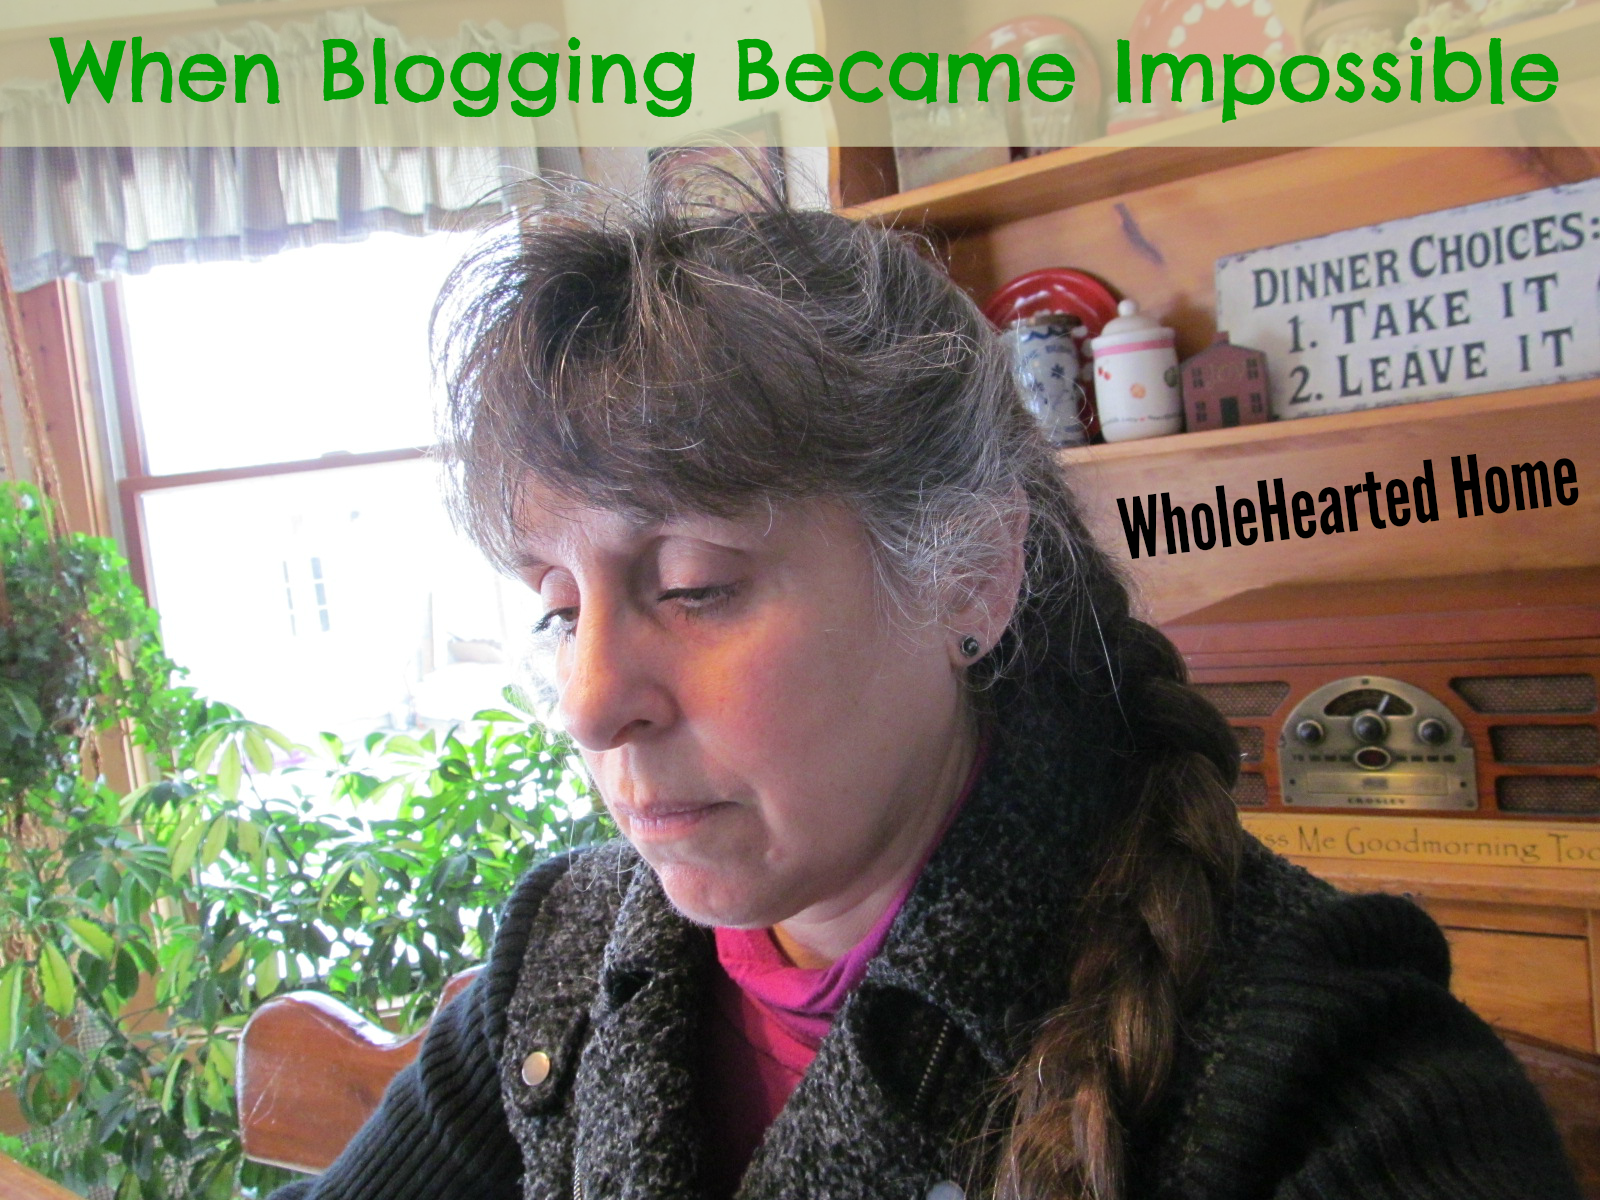 When Blogging Became Impossible + WholeHearted Wednesday #132